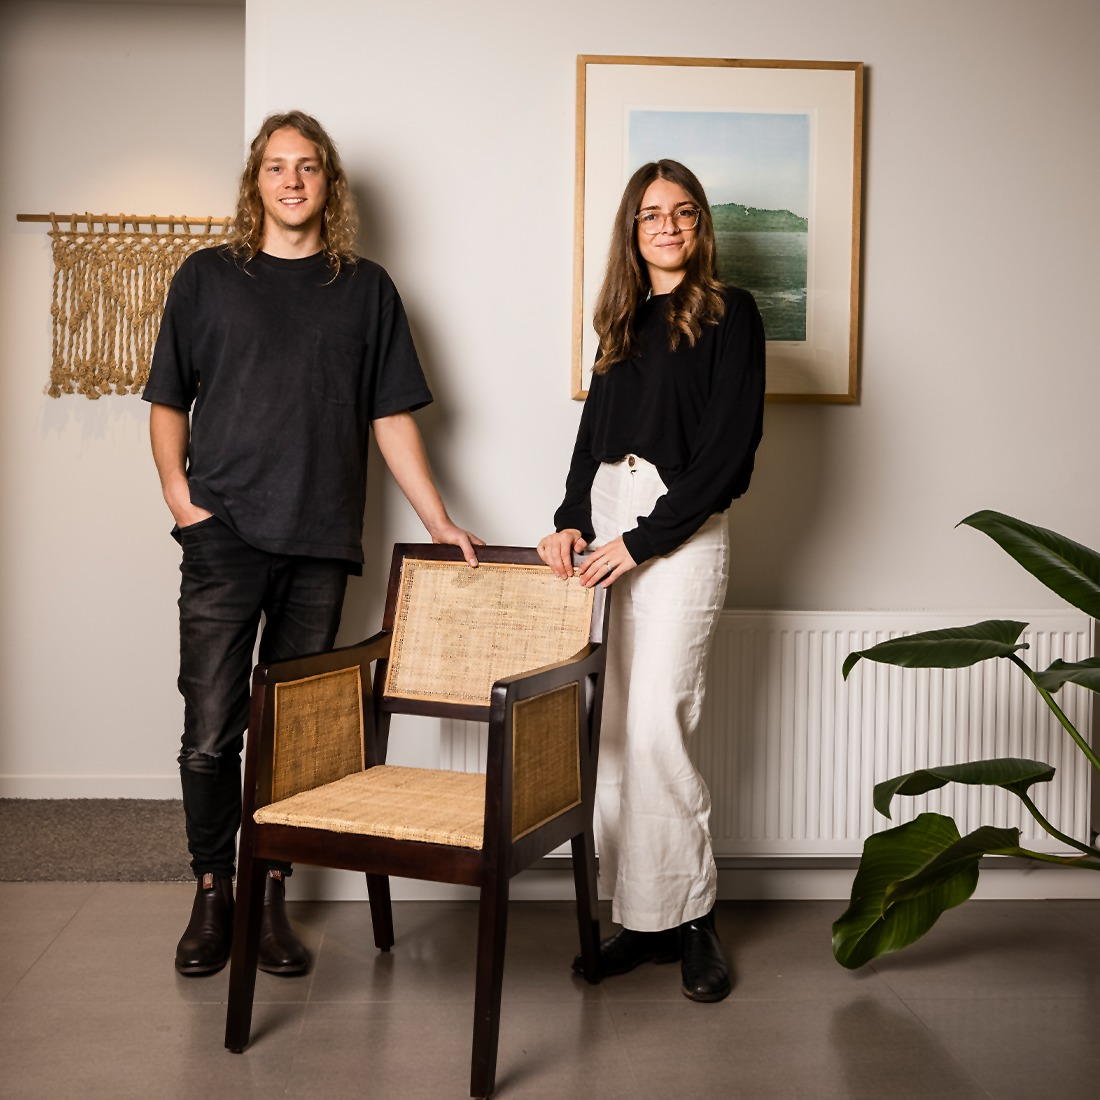 Phoebe Simpson and Tom Simpson. the owners of Hosea